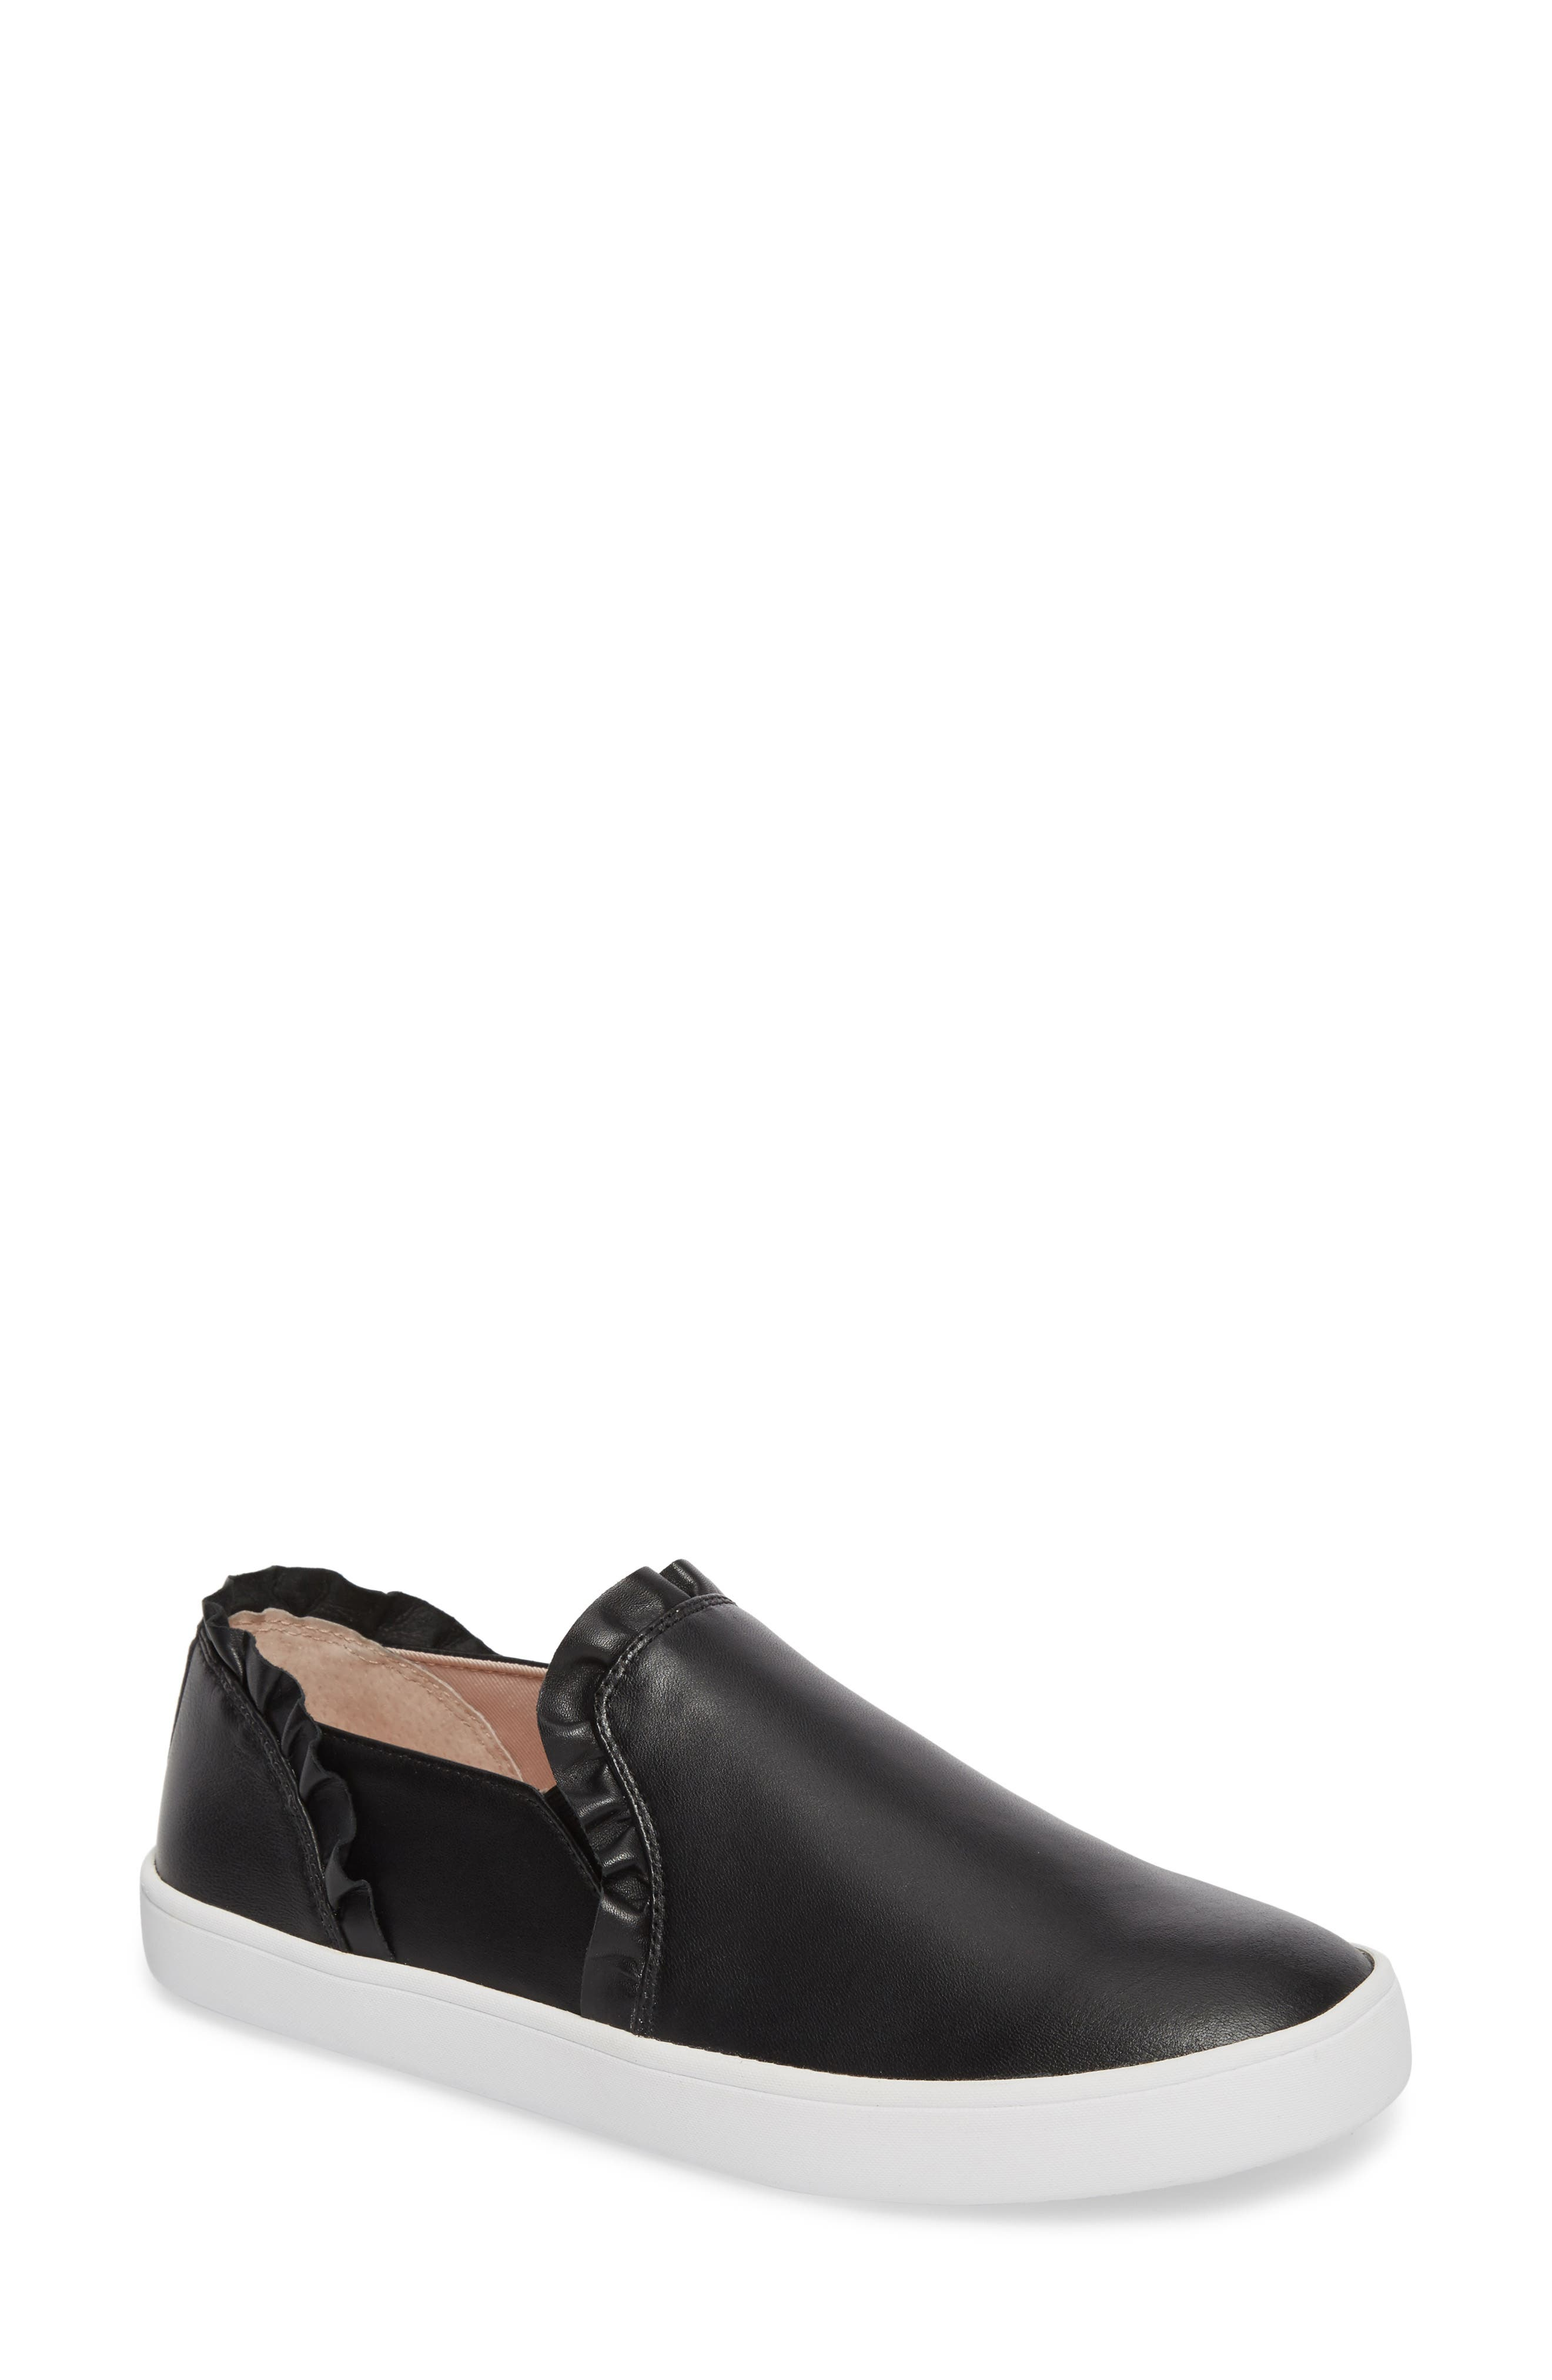 lilly ruffle slip-on sneaker,                             Main thumbnail 1, color,                             BLACK NAPPA